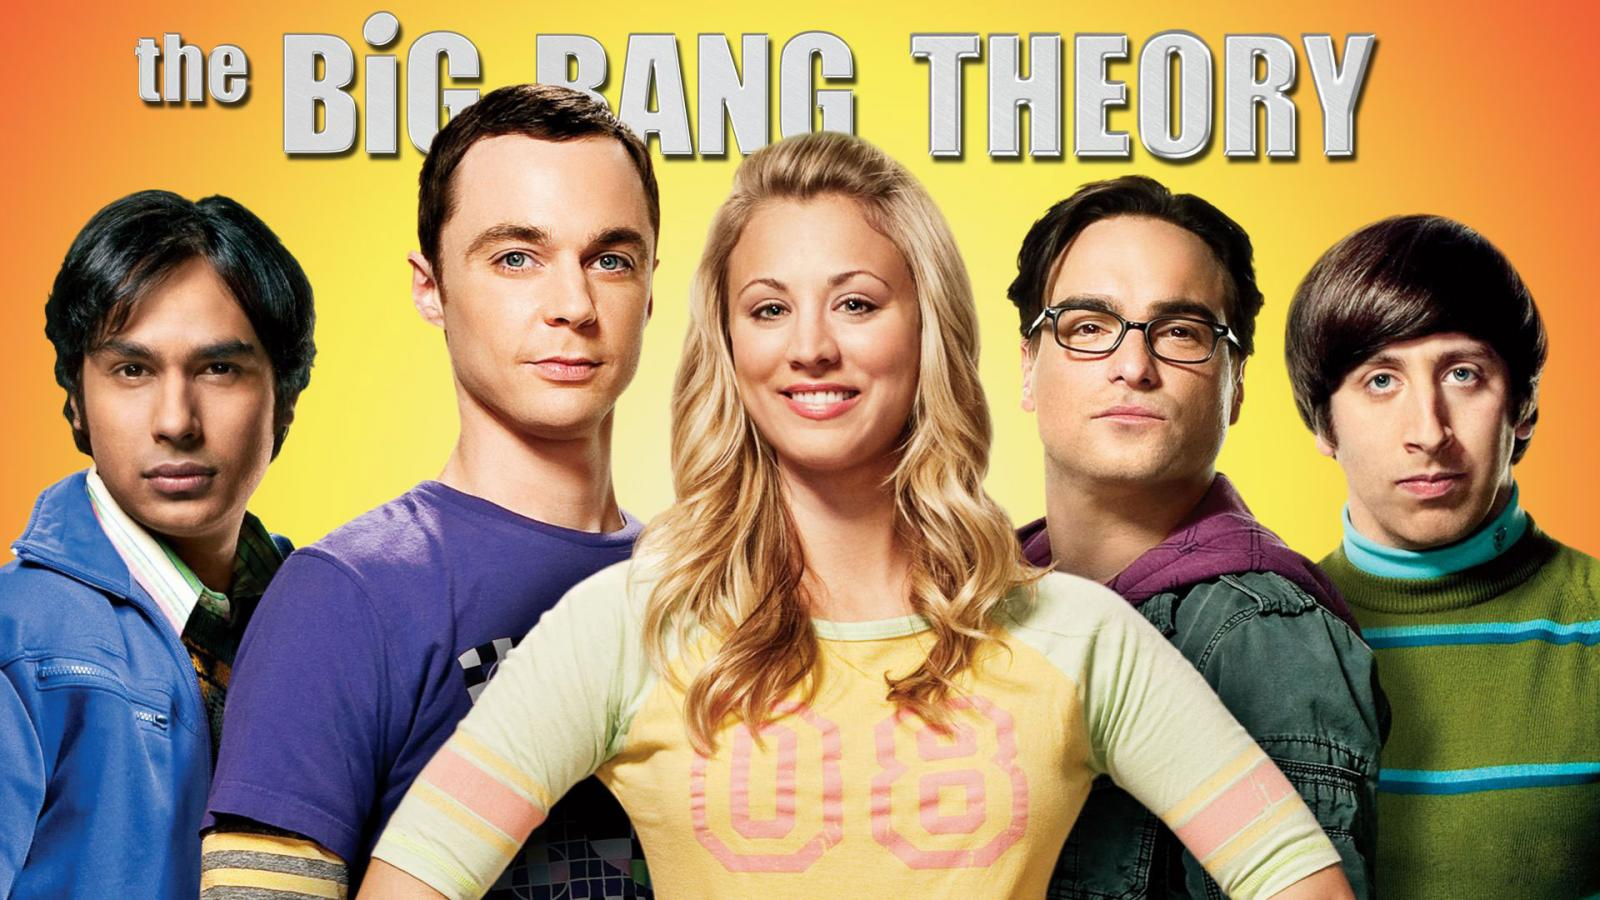 The Big Bang Theory Wallpaper and Background Image | 1600x900 | ID ...